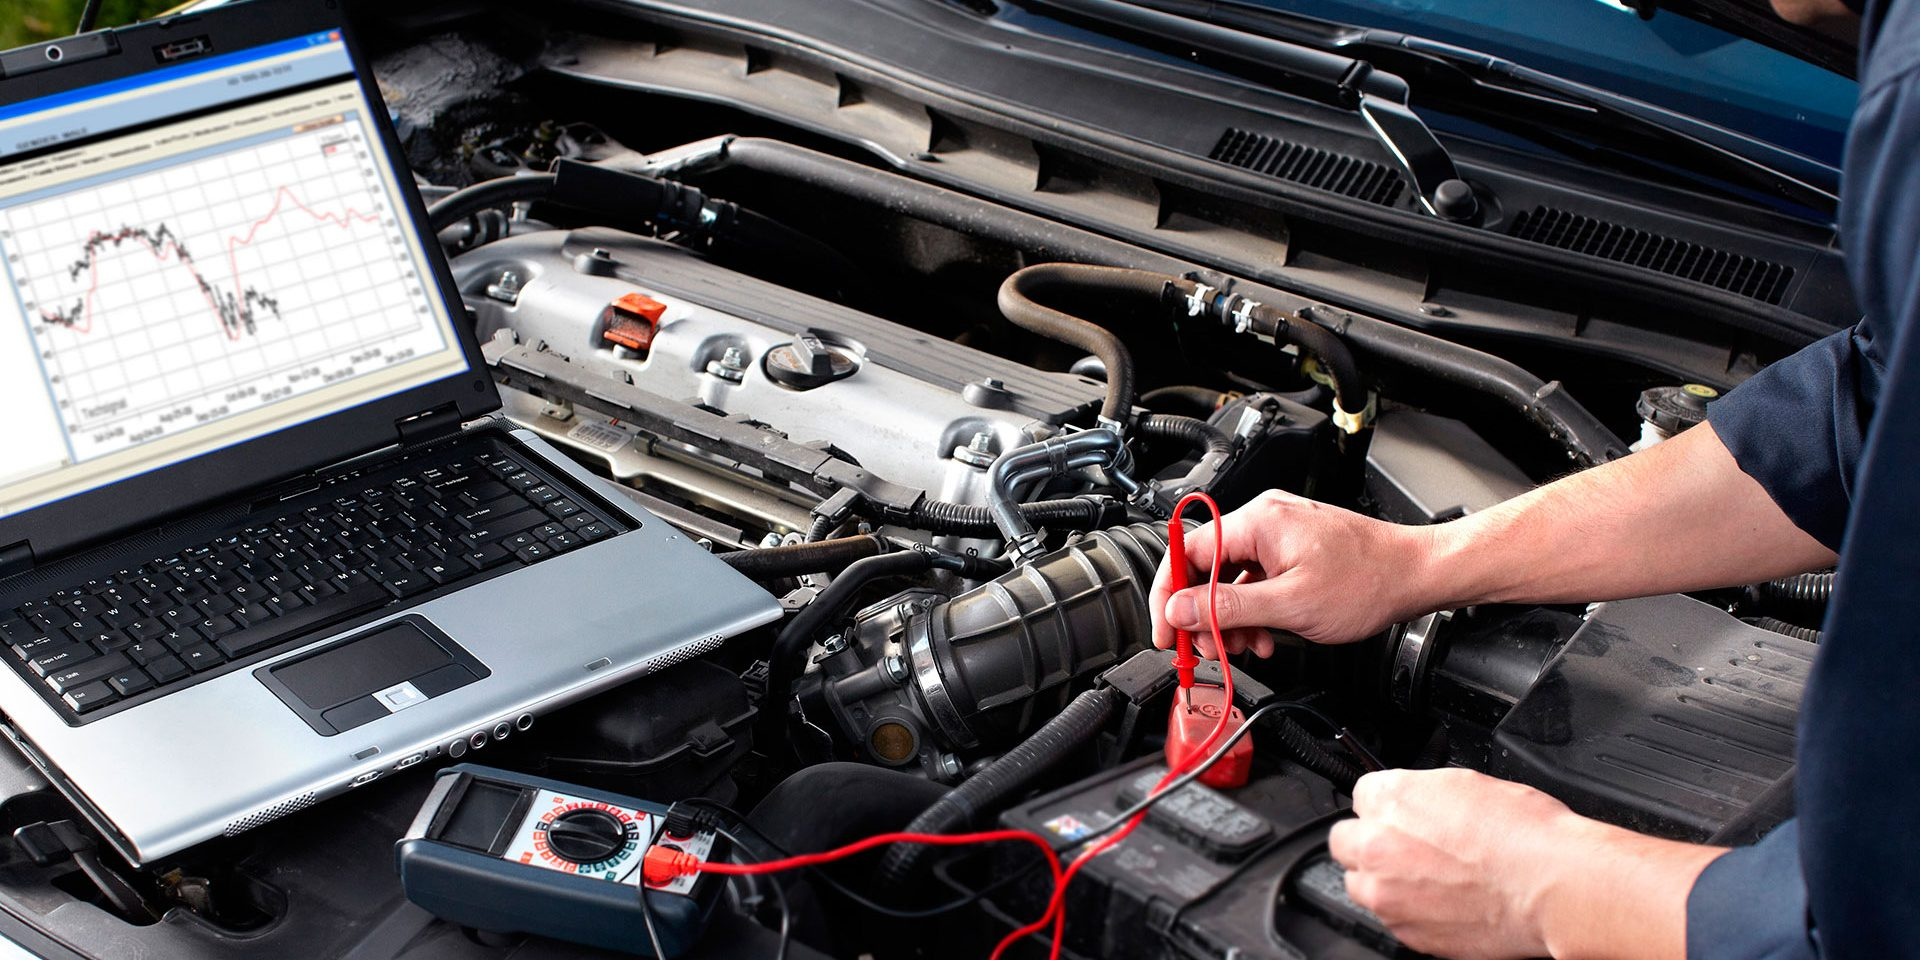 What diagnostic tool do I need? - Equiptech Automotive